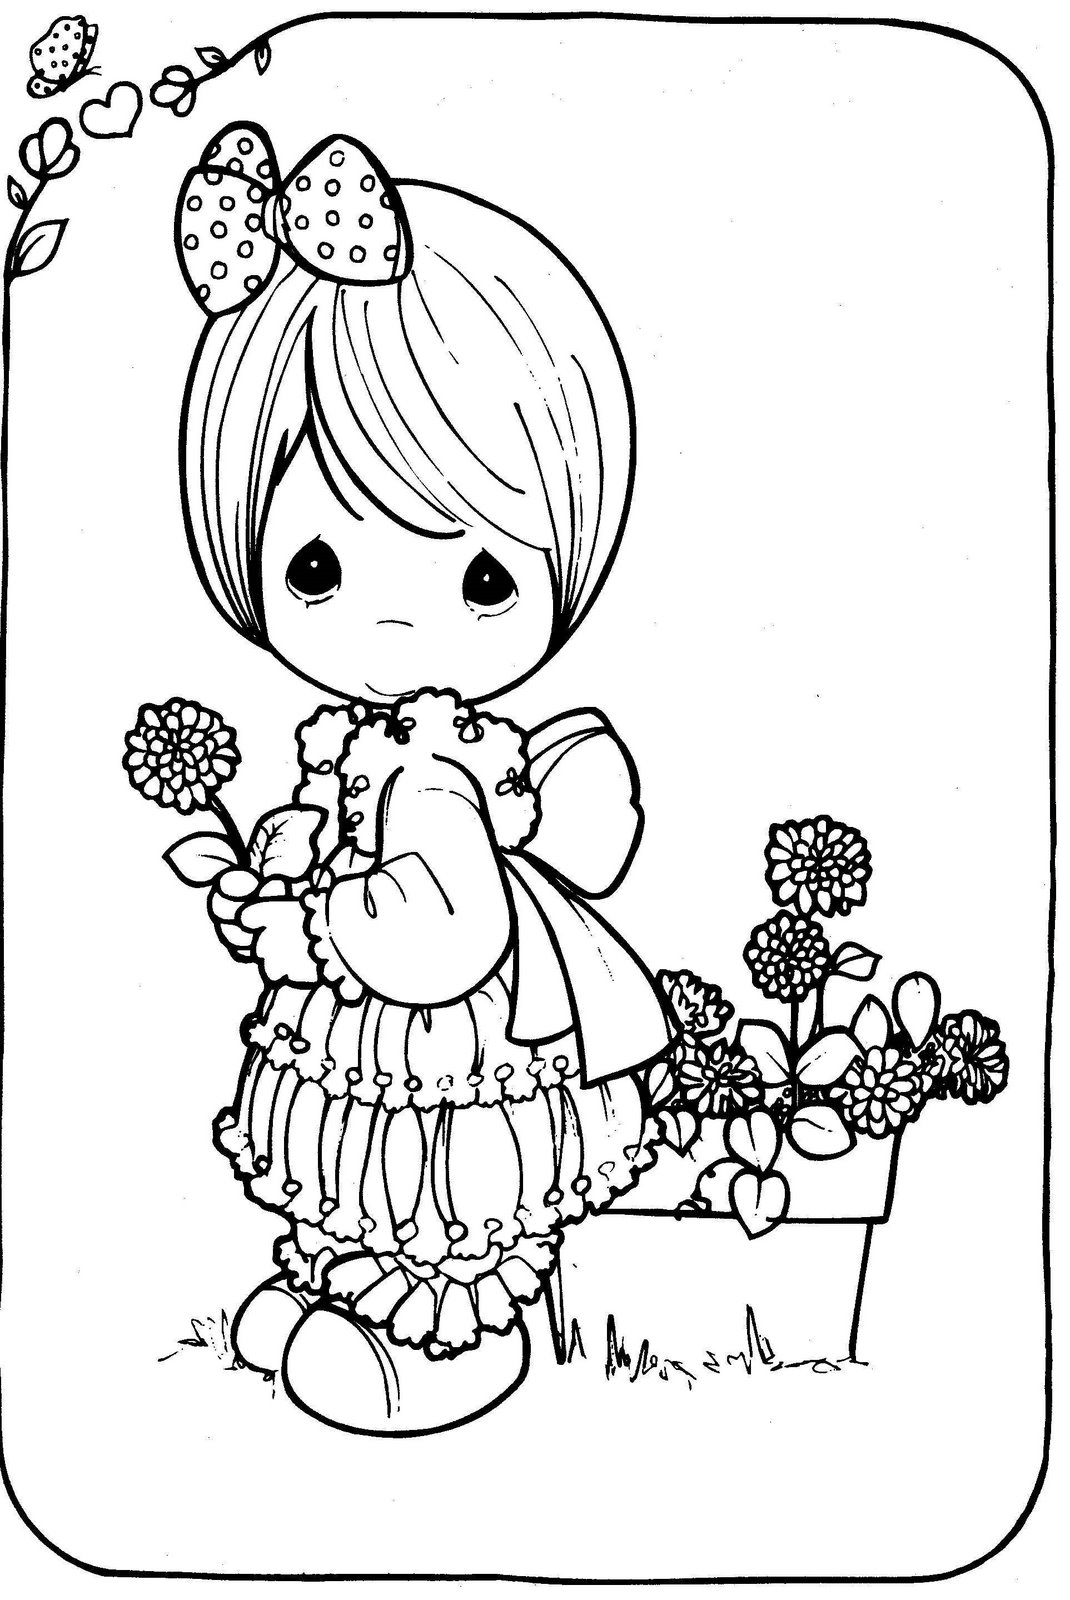 drawing girl precious moments in black and white to color child coloring. Black Bedroom Furniture Sets. Home Design Ideas